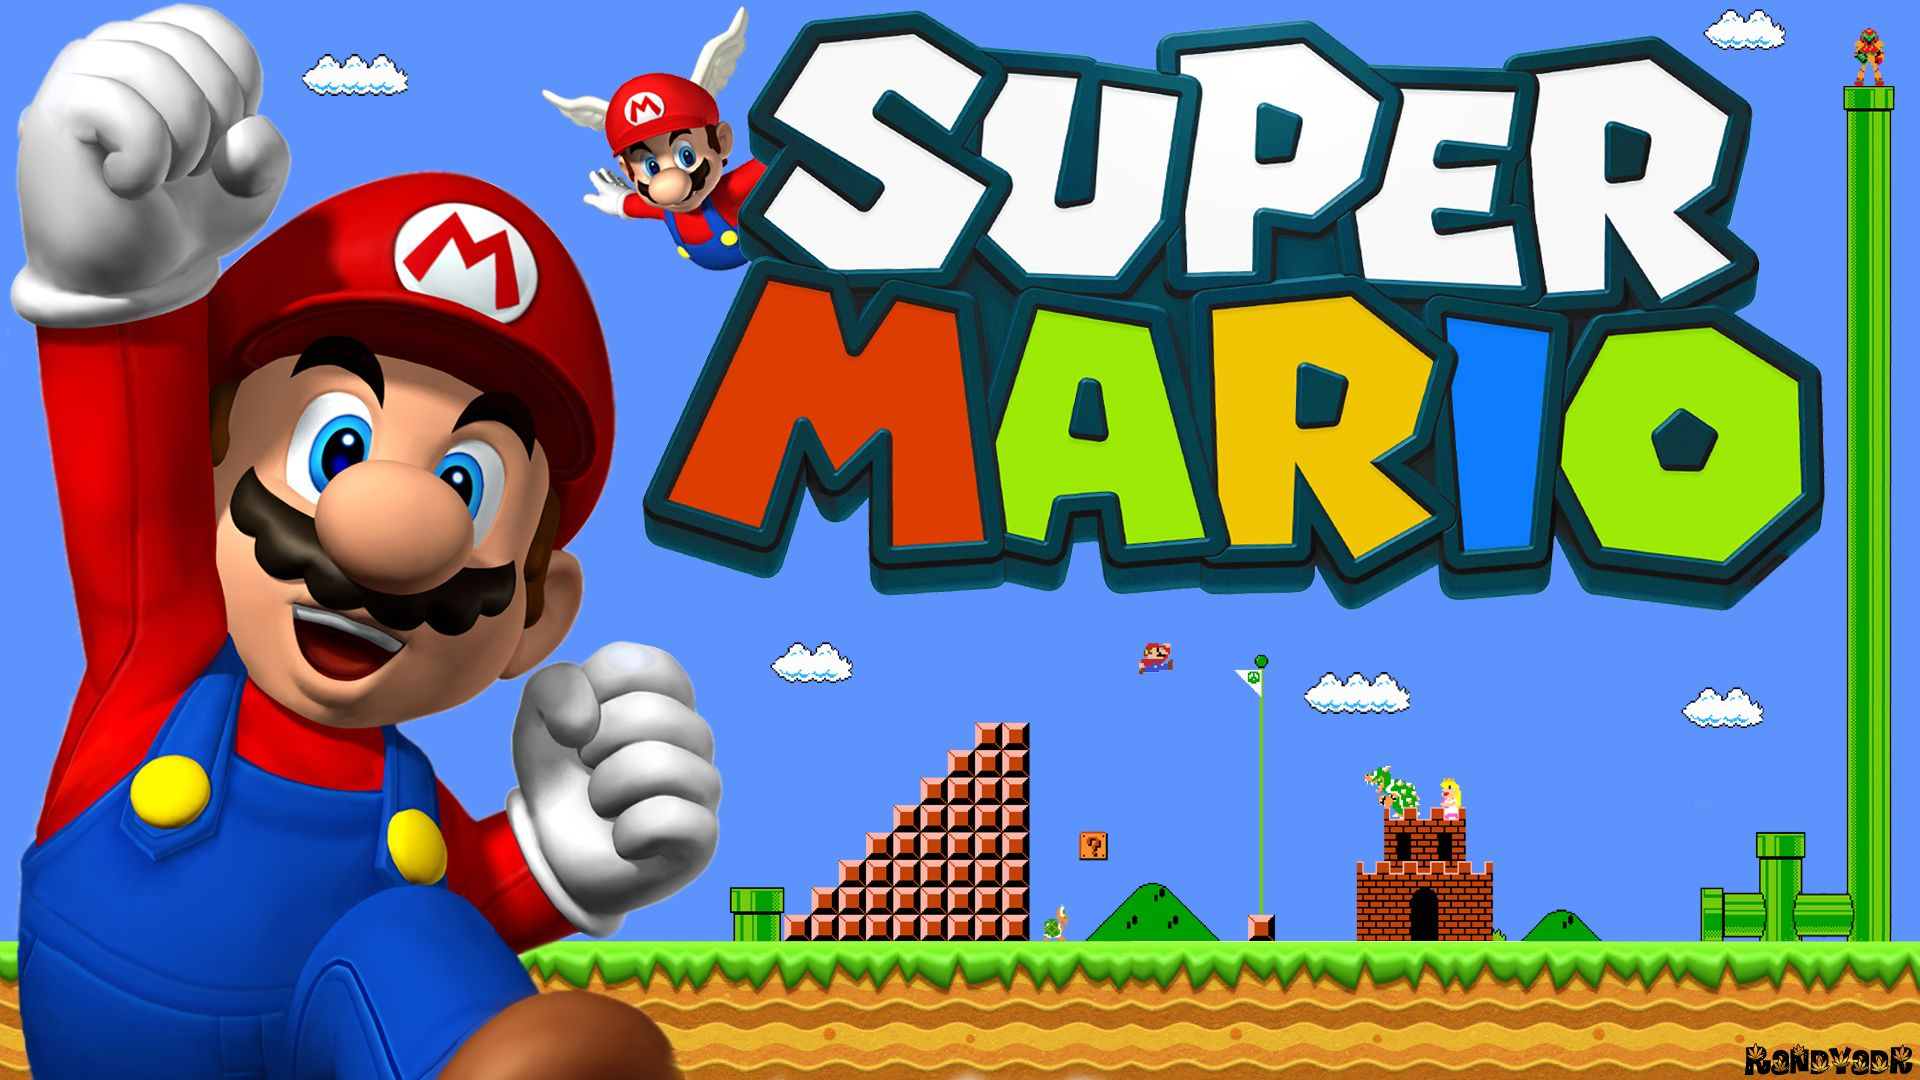 Five Best Mario Games Ever Http Www Mariomayhem Com Bowsers Blog Index Php 2017 04 16 Five Best Mario Games Ever Jogo Do Mario Irmaos Mario Super Mario